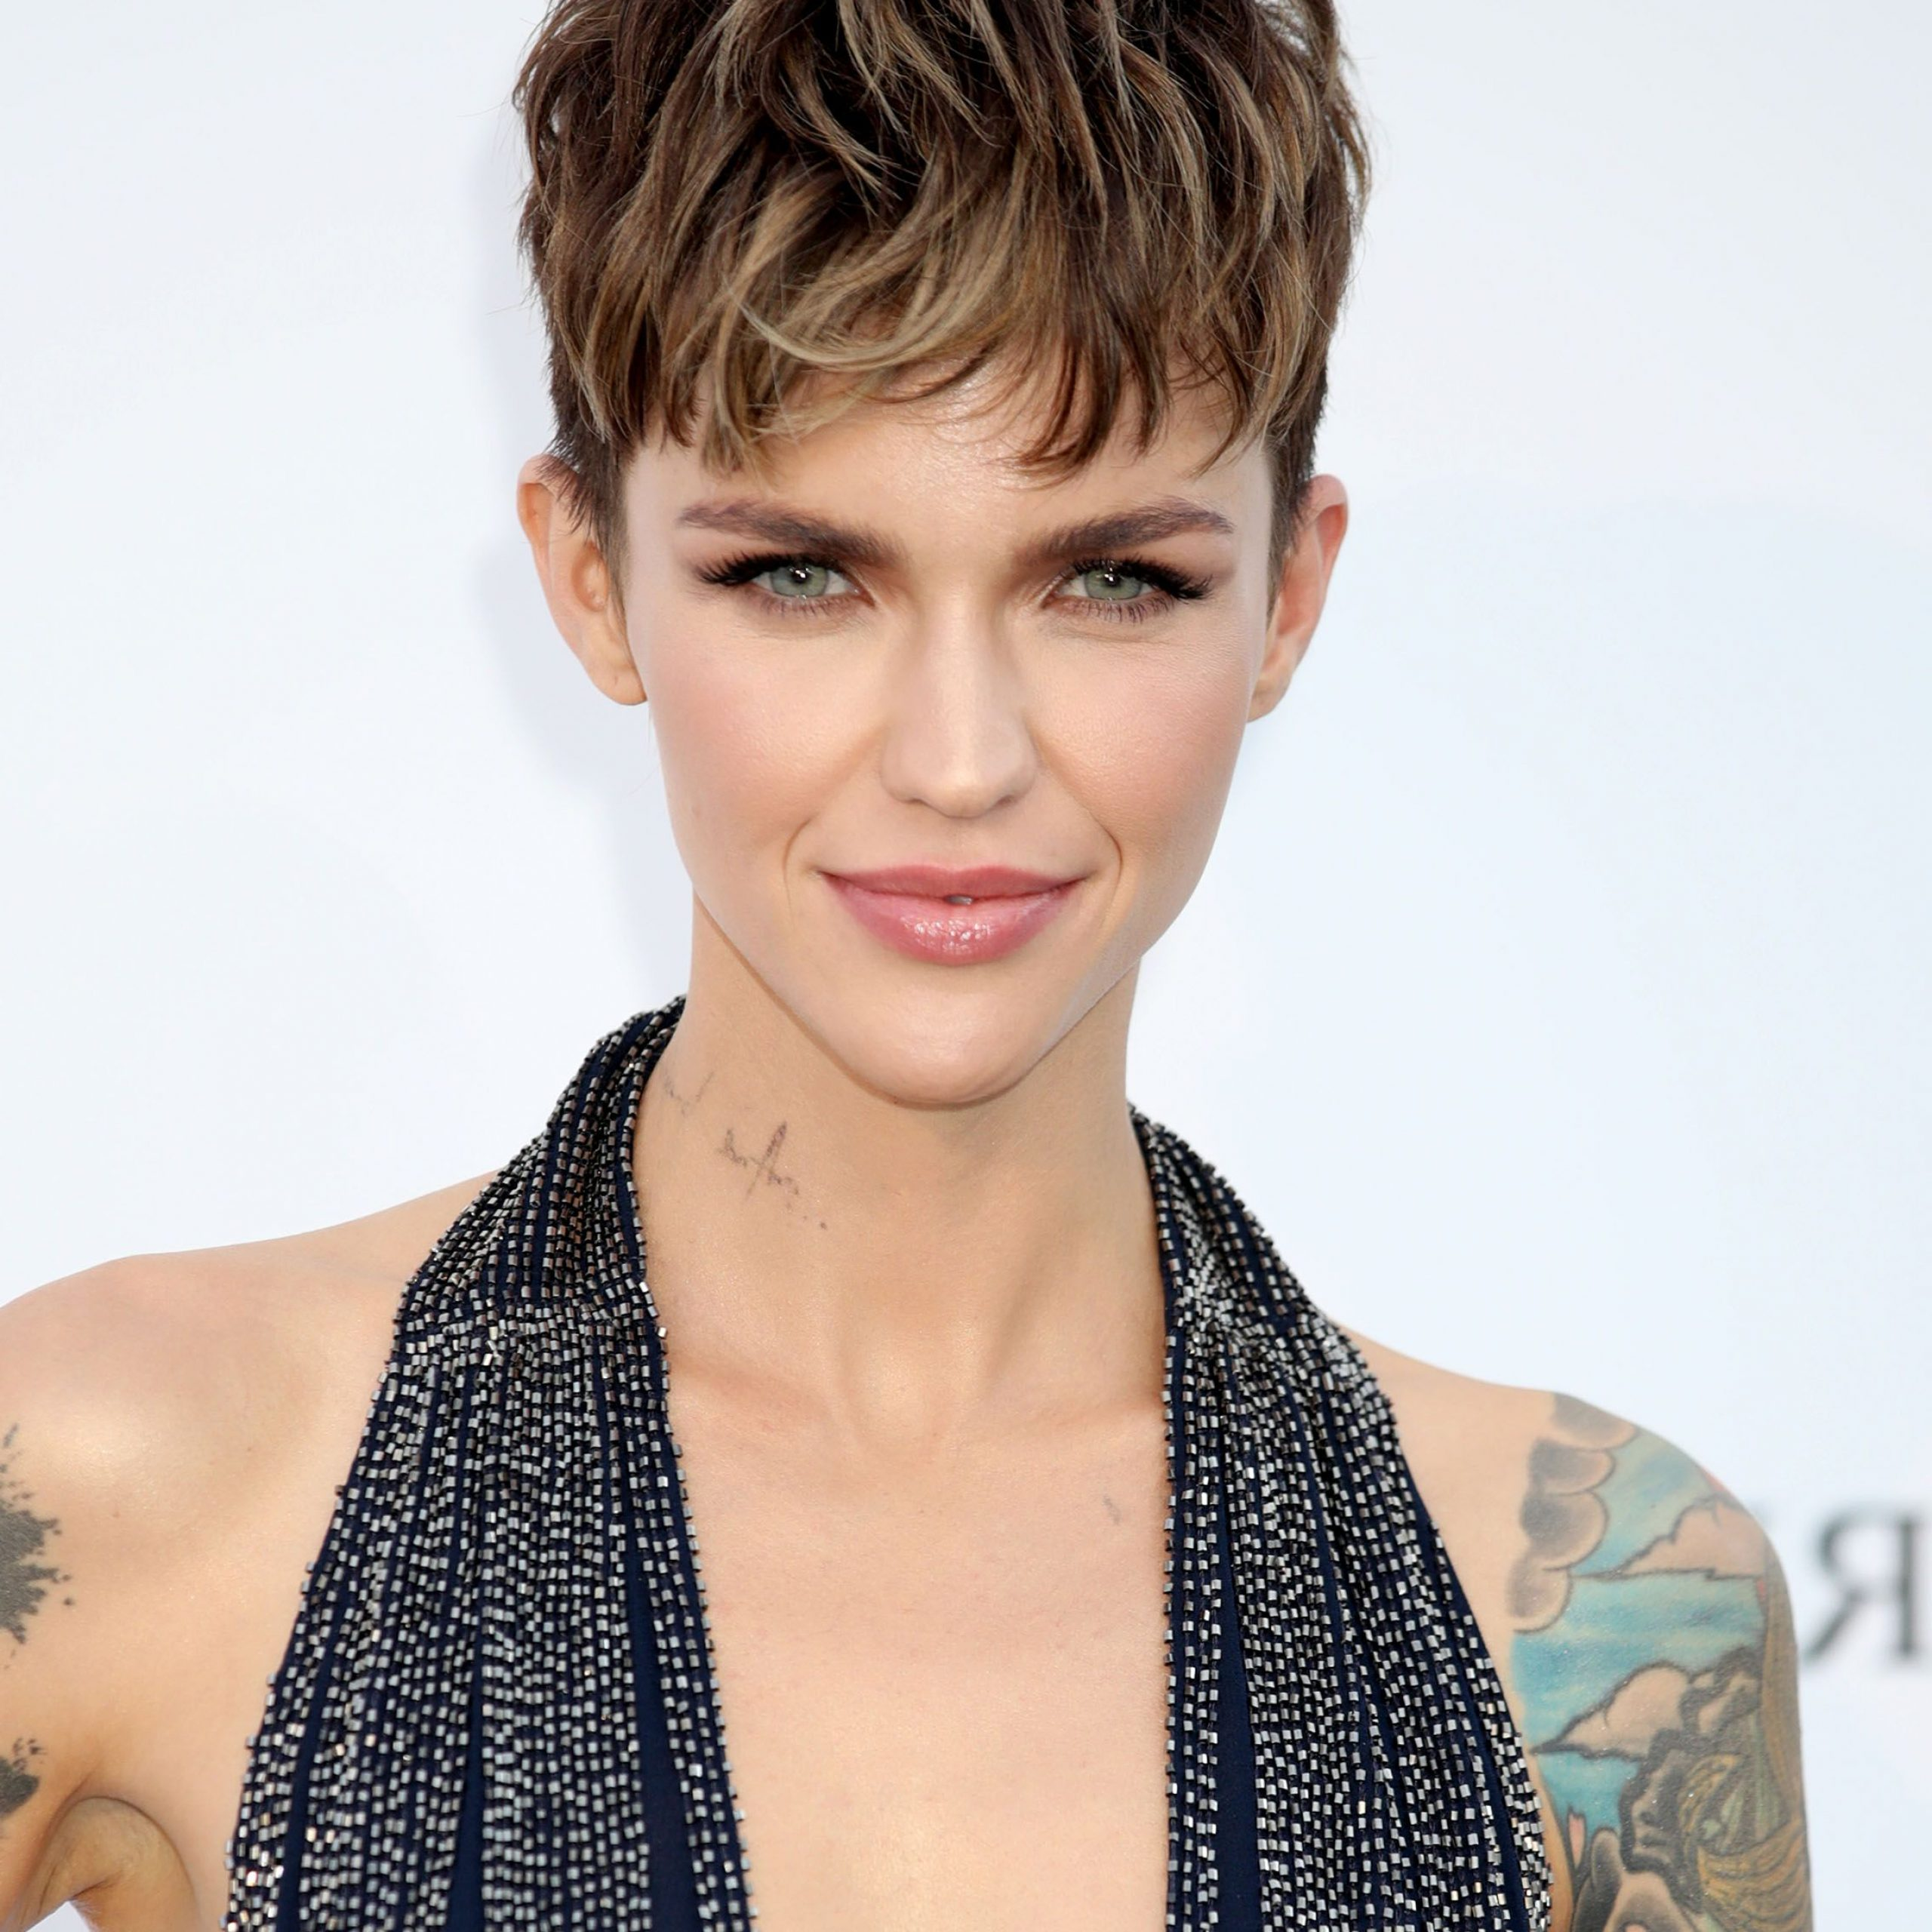 70 Best Pixie Cut Hairstyle Ideas 2019 – Cute Celebrity With Long Curly Pixie Haircuts With Subtle Highlights (View 14 of 20)